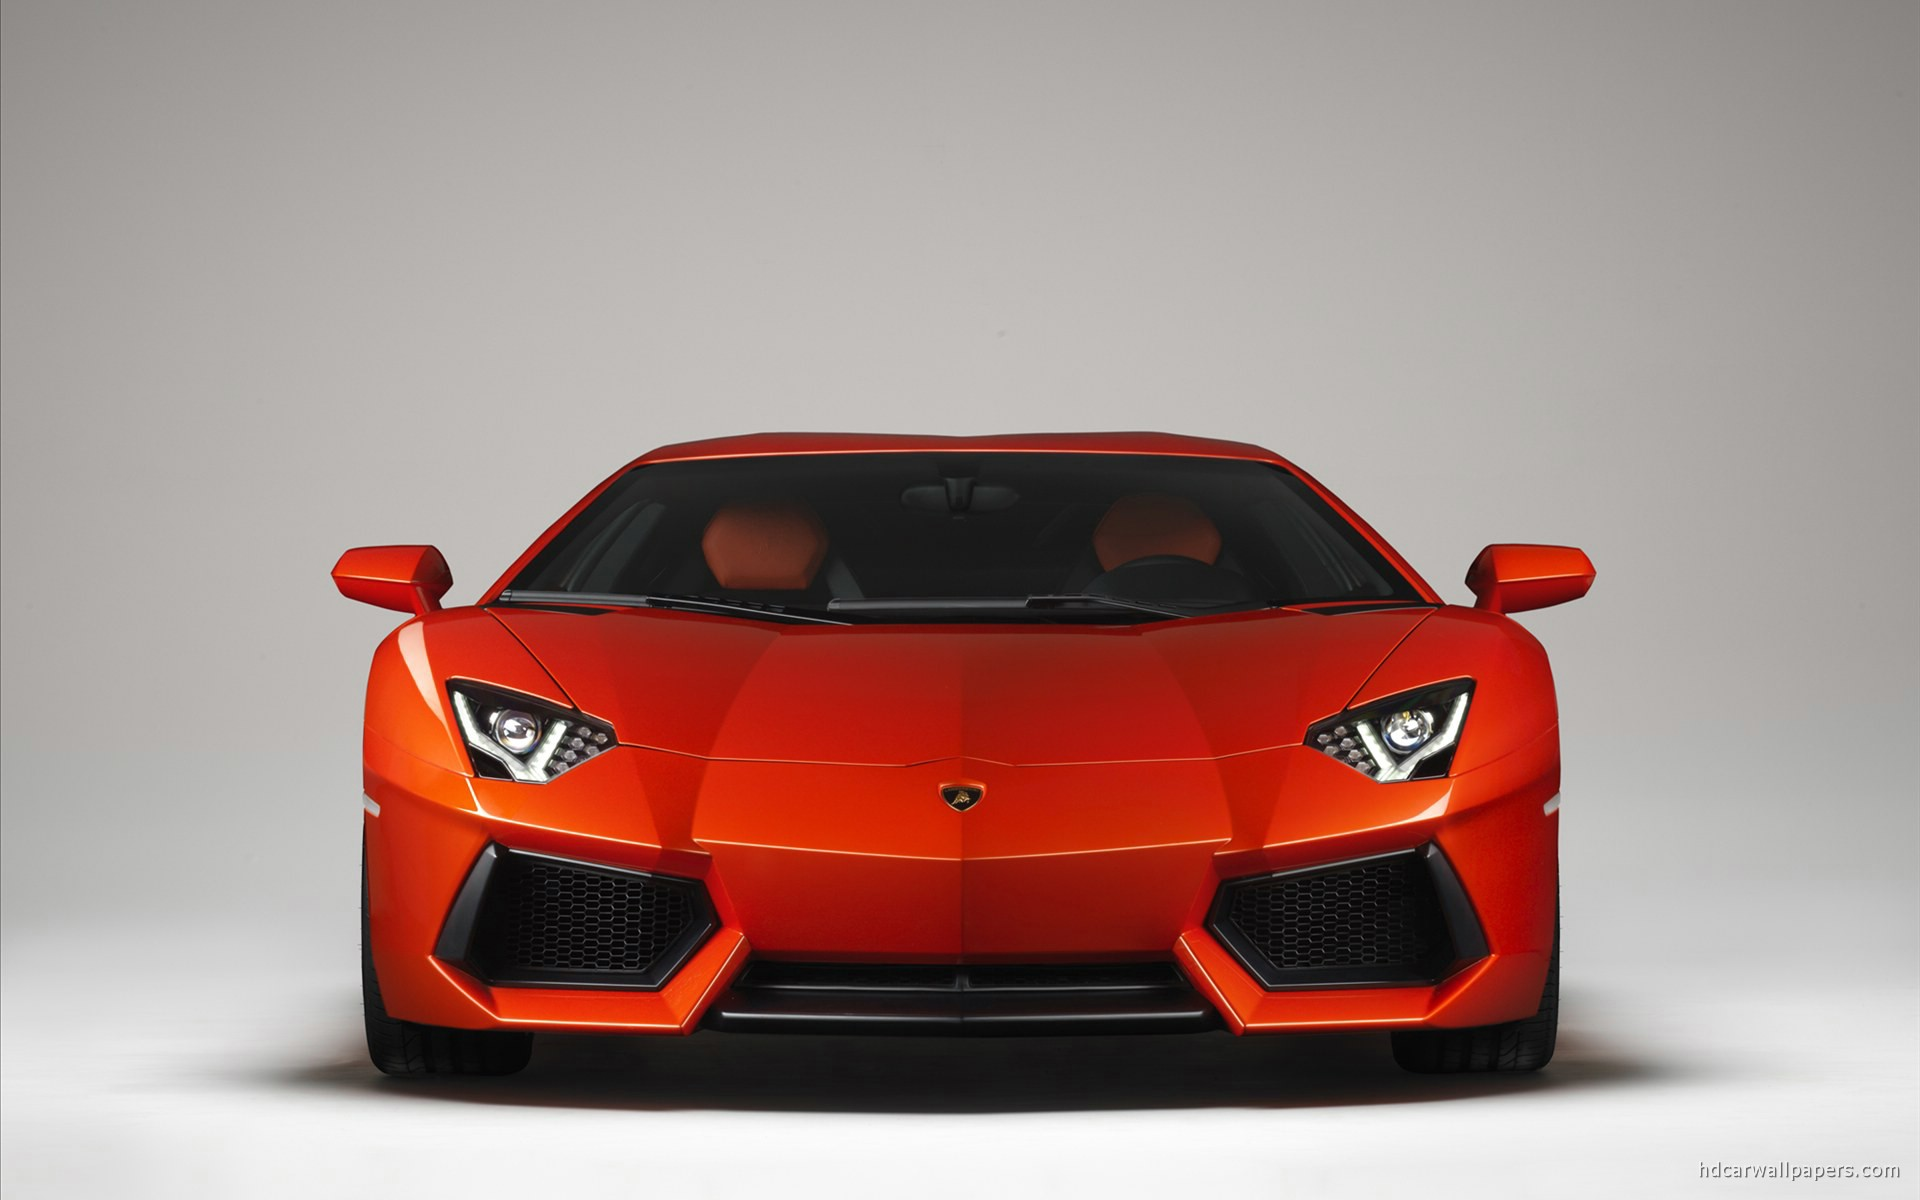 2011 Lamborghini Aventador Wallpaper | HD Car Wallpapers ...